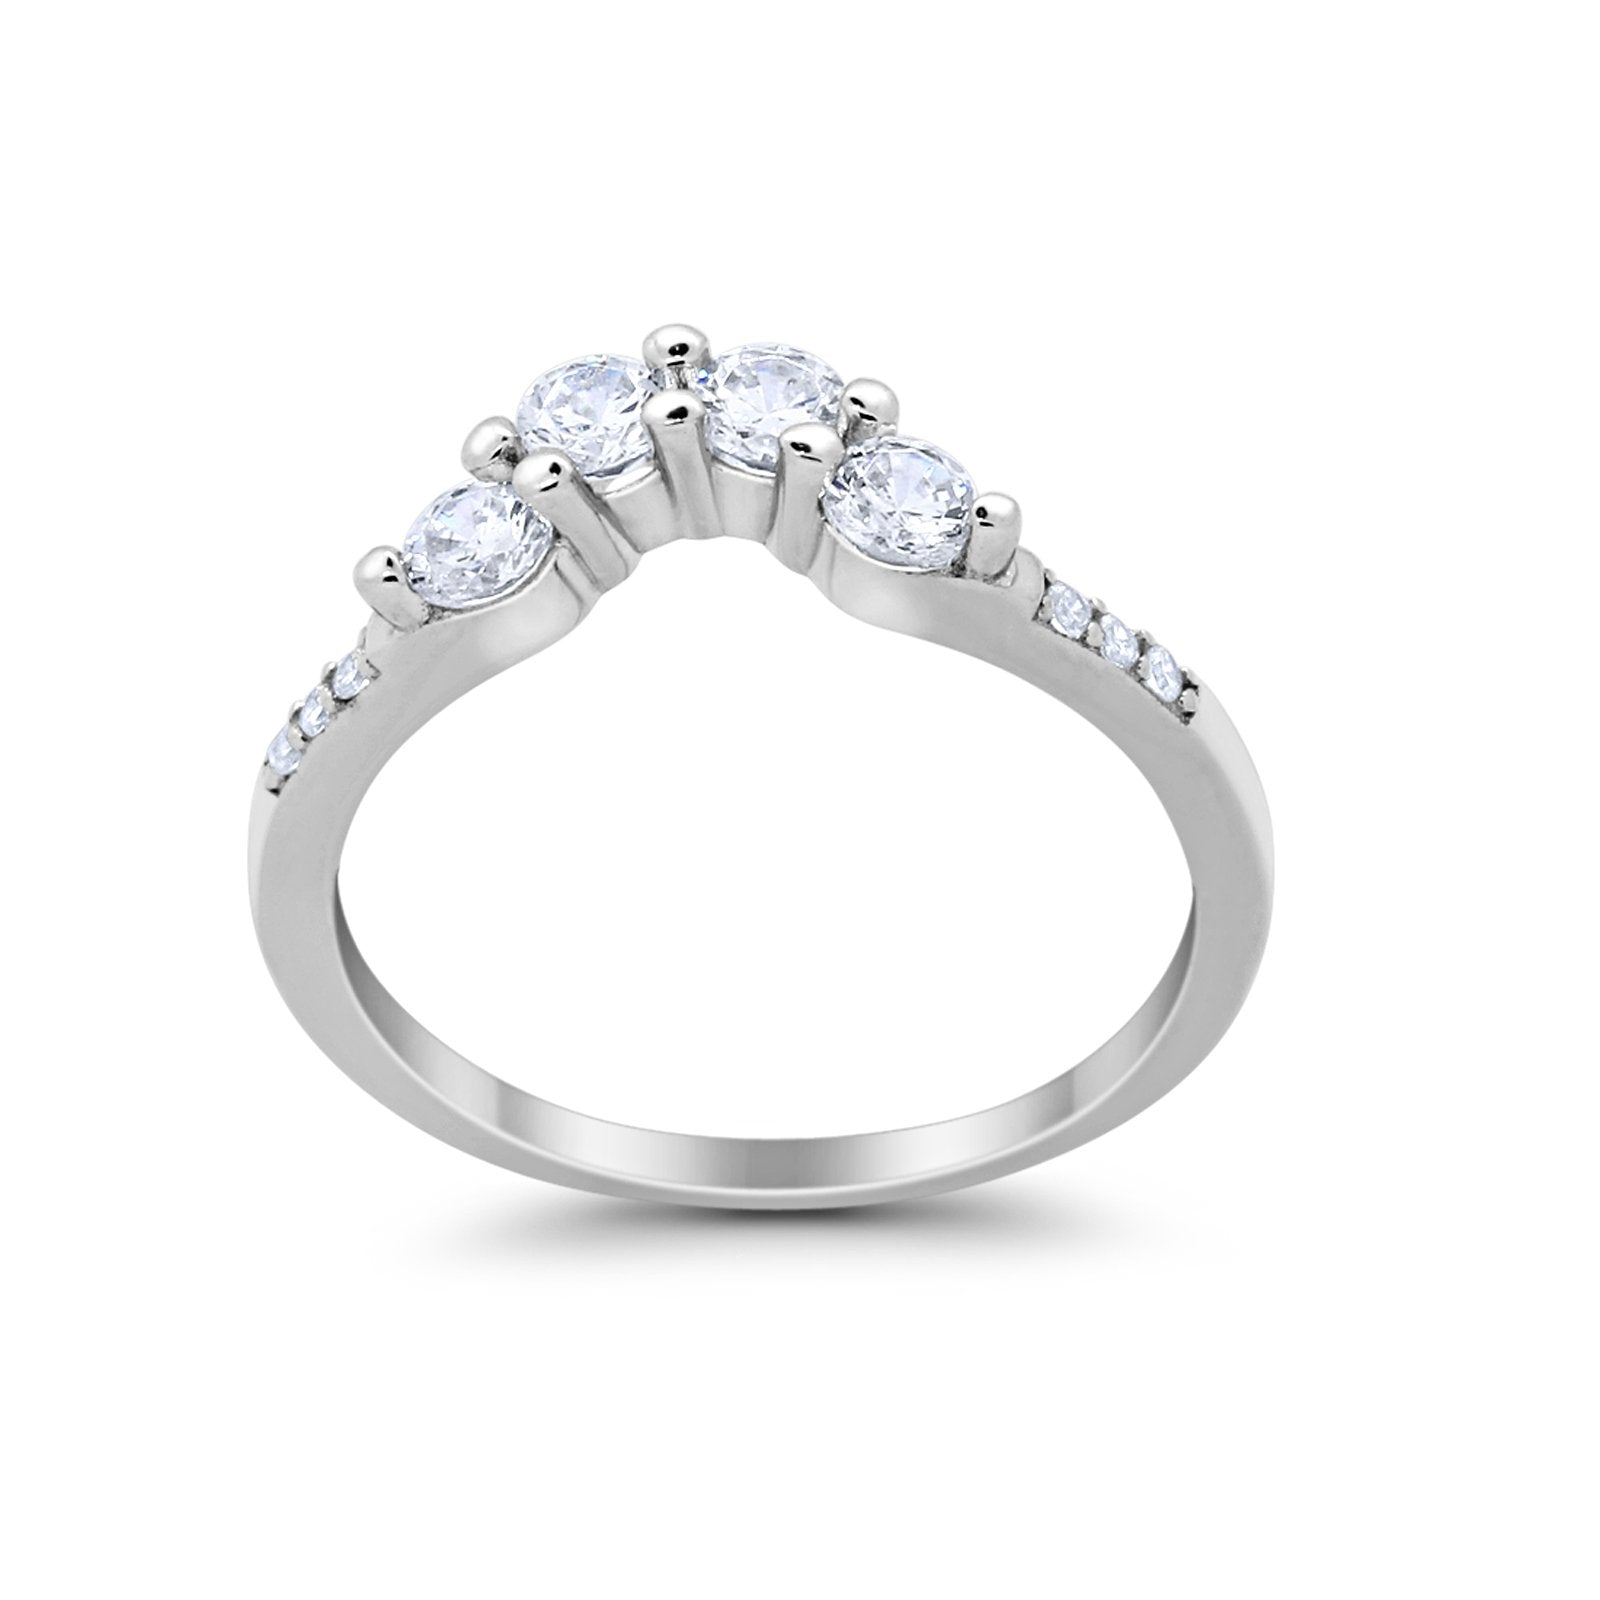 Curved Wedding Eternity Band Simulated Cubic Zirconia 925 Sterling Silver Ring